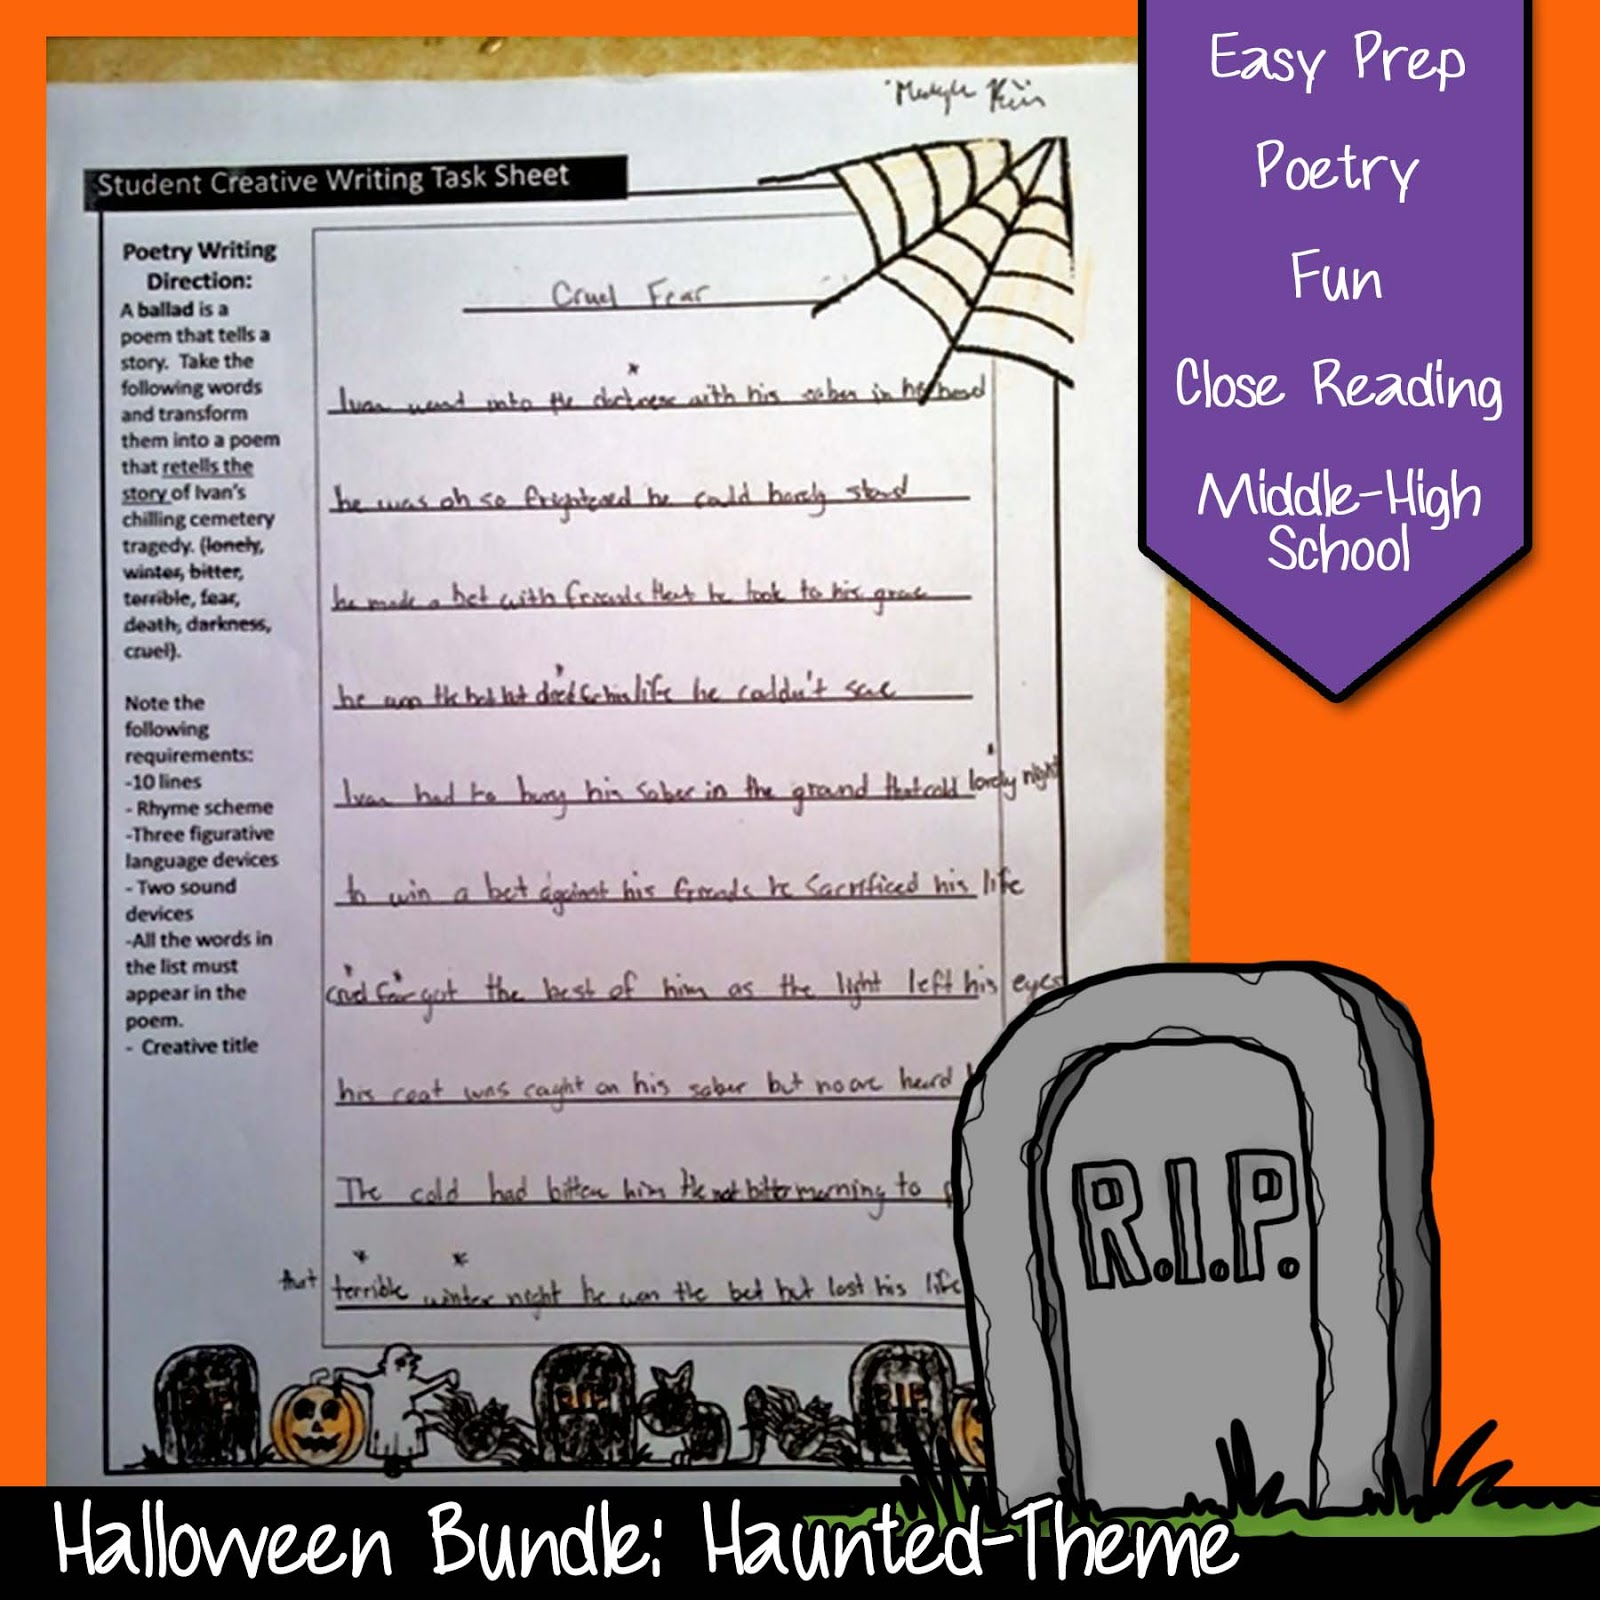 Top Five Favorite Halloween English Lessons For Middle Or